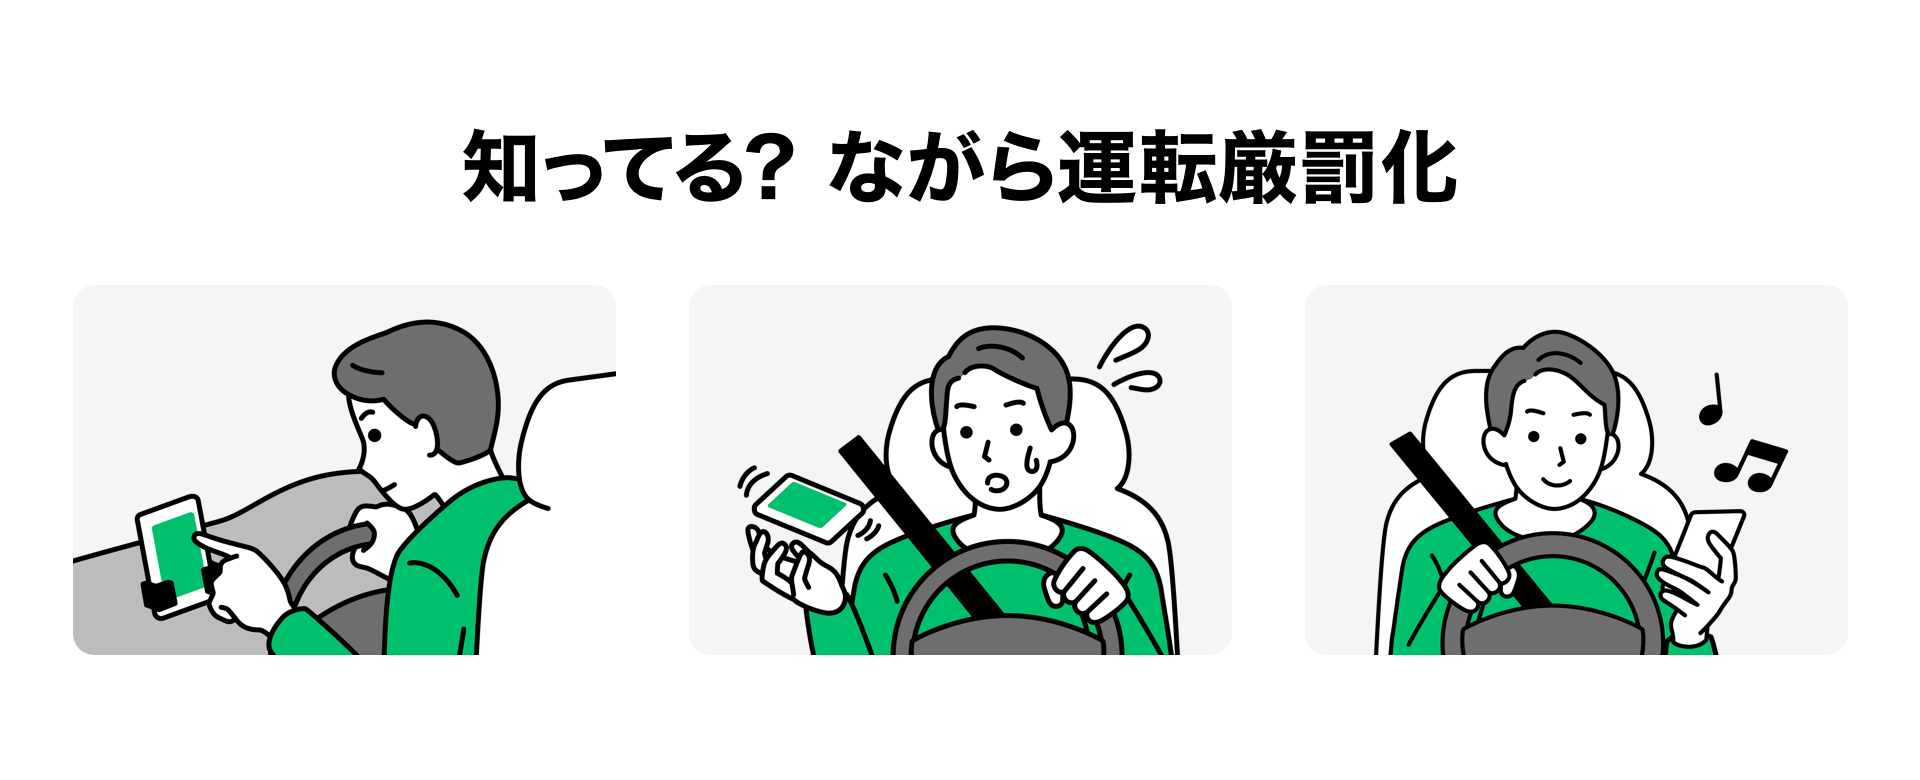 /stf/linecorp/ja/pr/distracted_driving_example.png